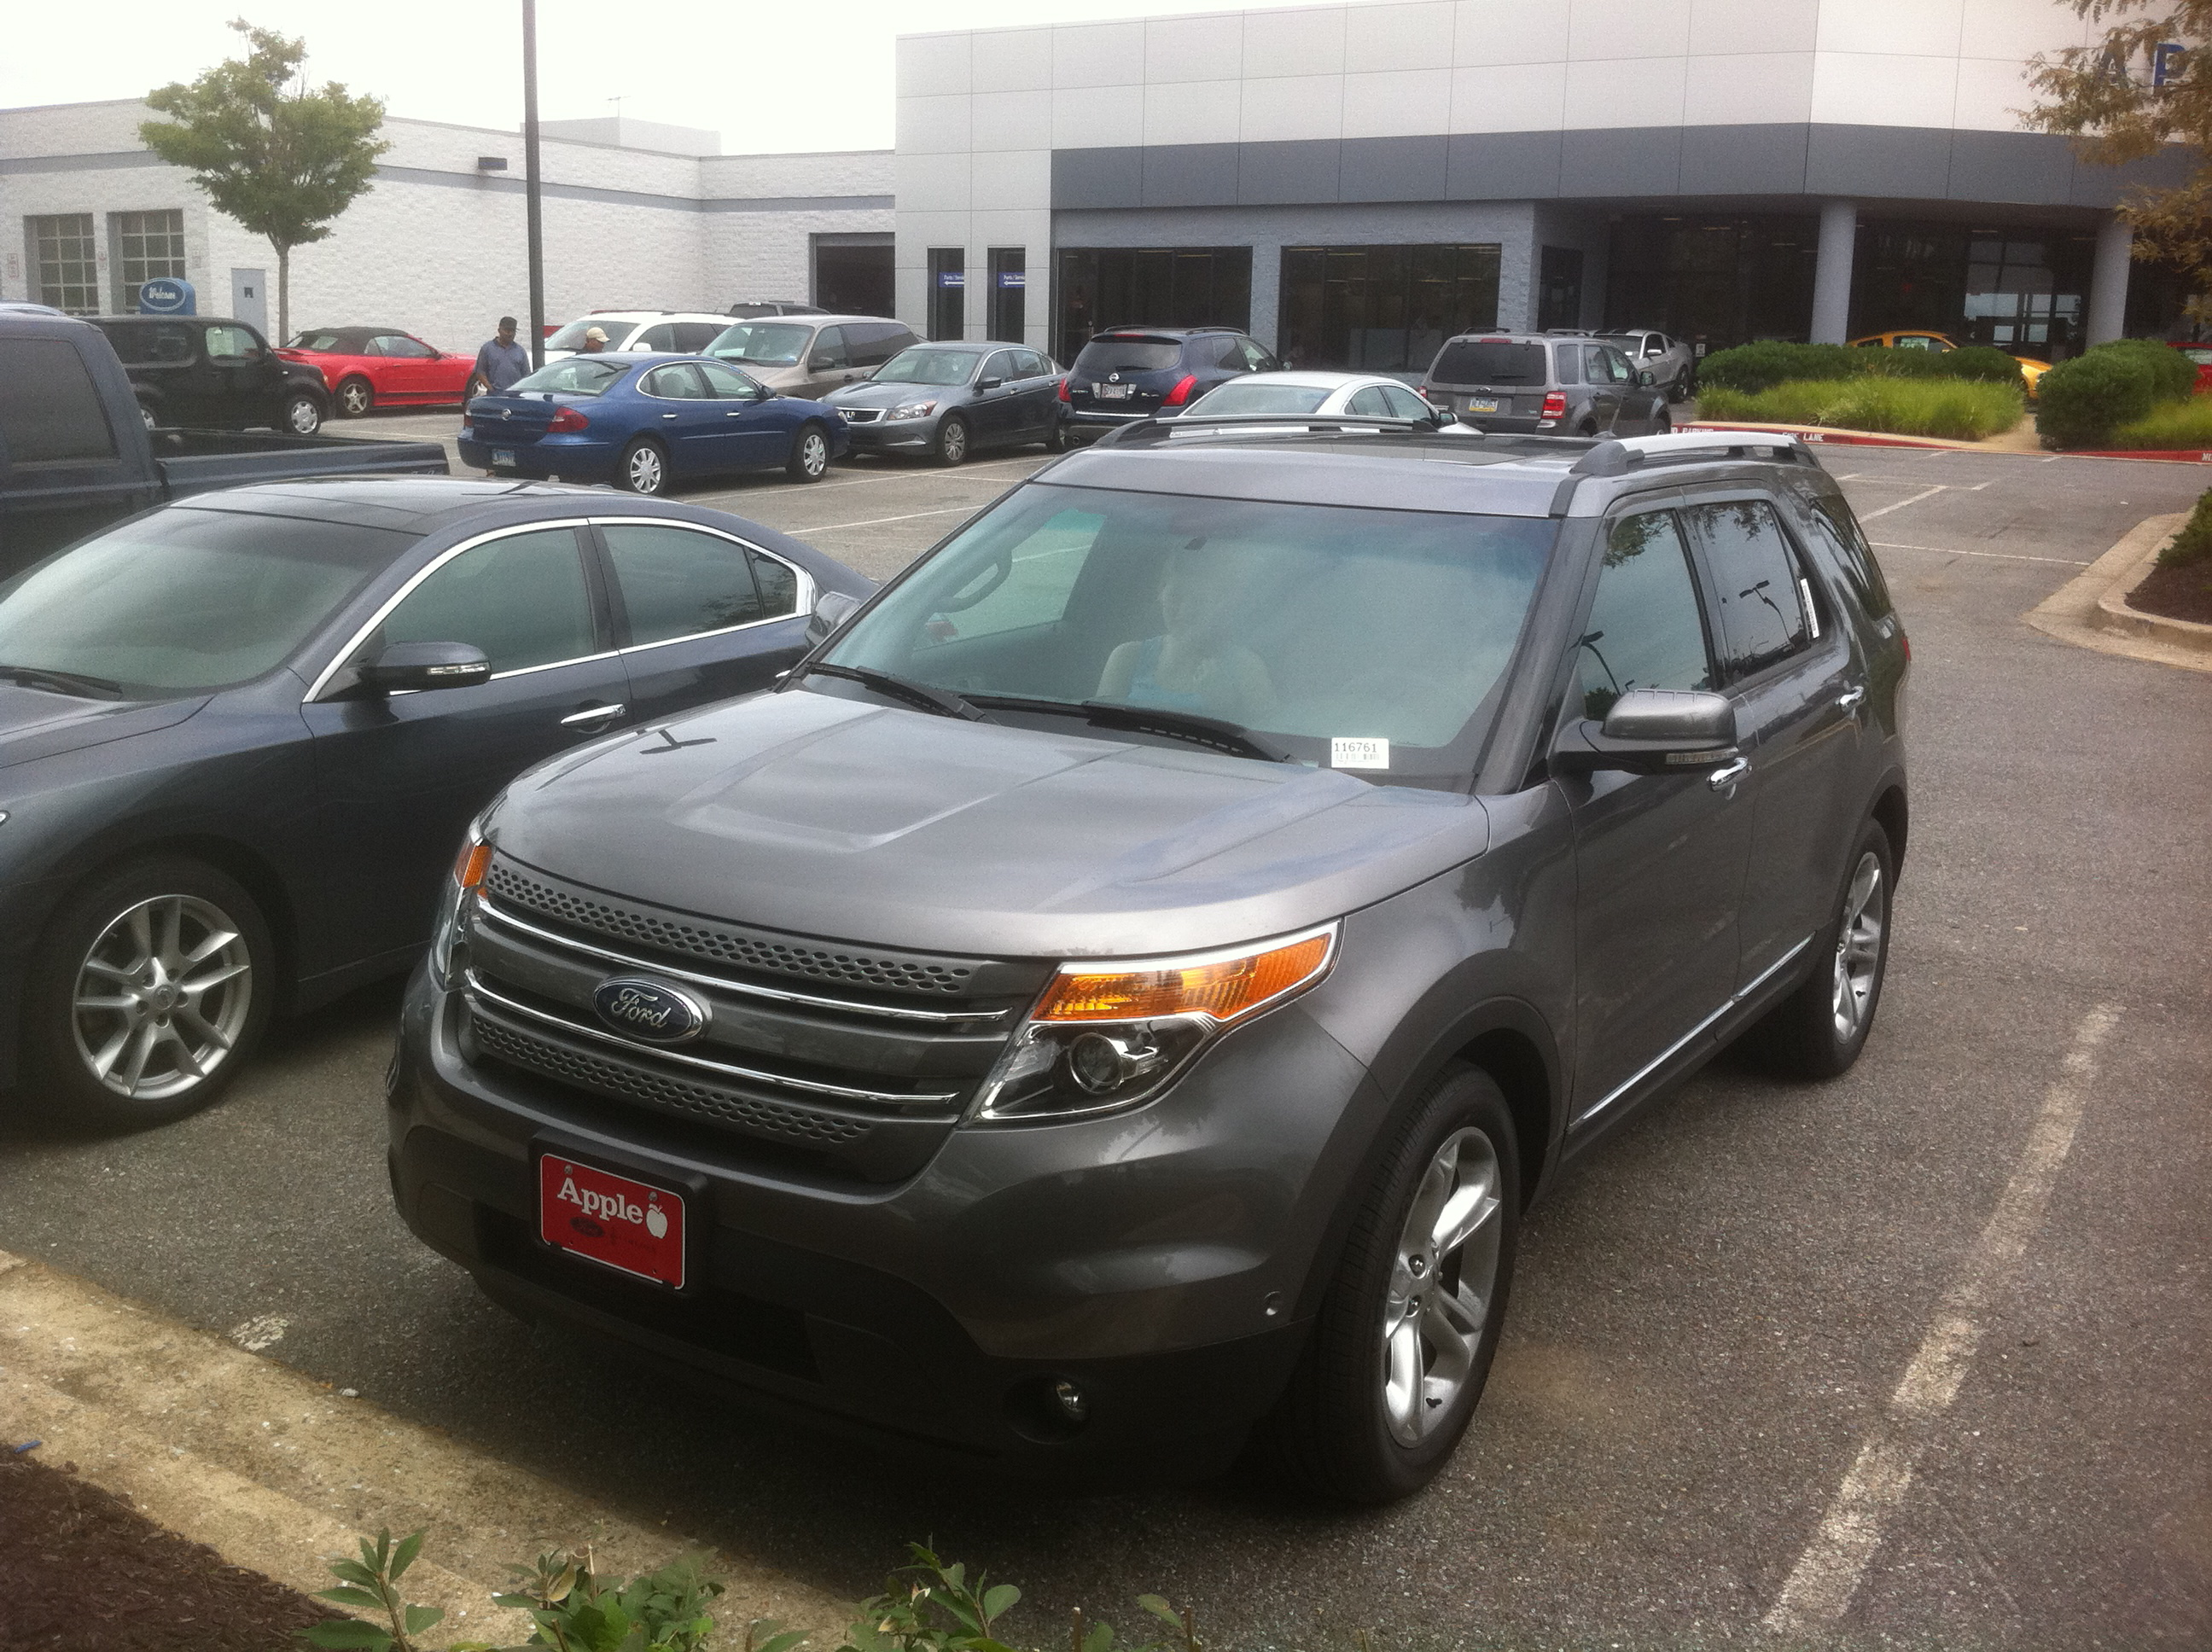 Ford Explorer 2011 - new outside and inside